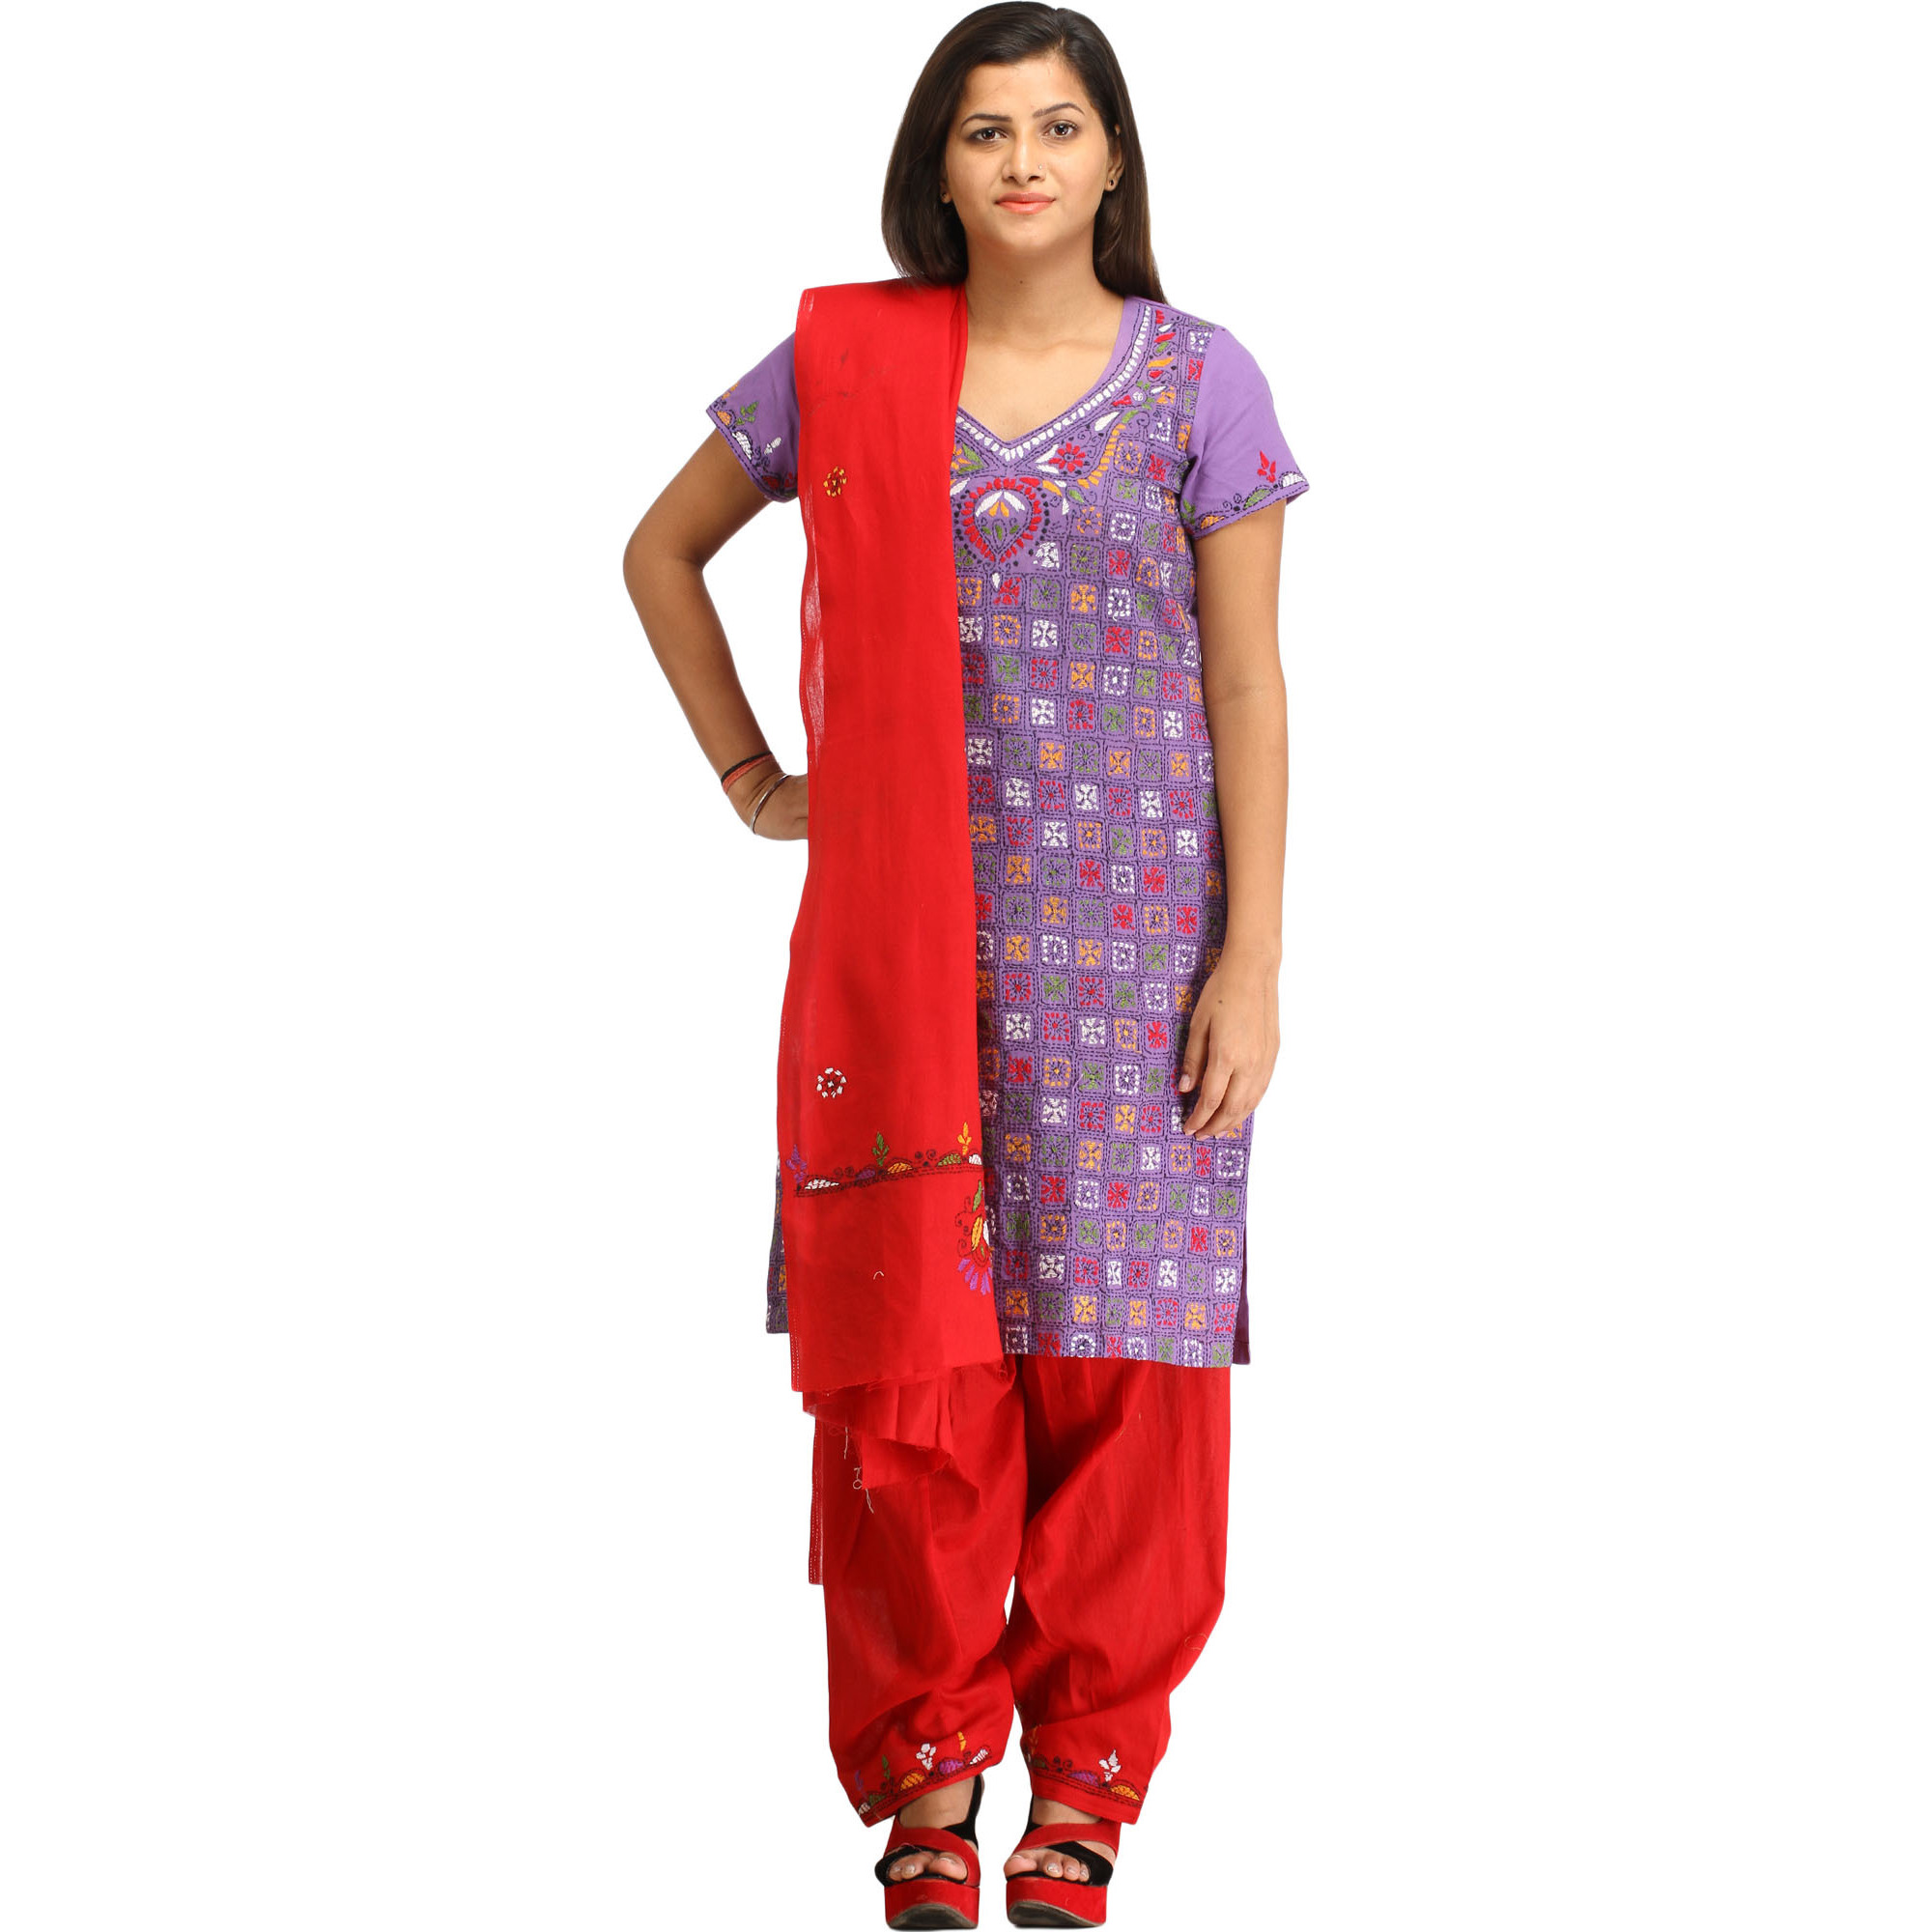 Purple and Red Salwar Kameez Suit from Kolkata with Kantha Hand-Embroidery